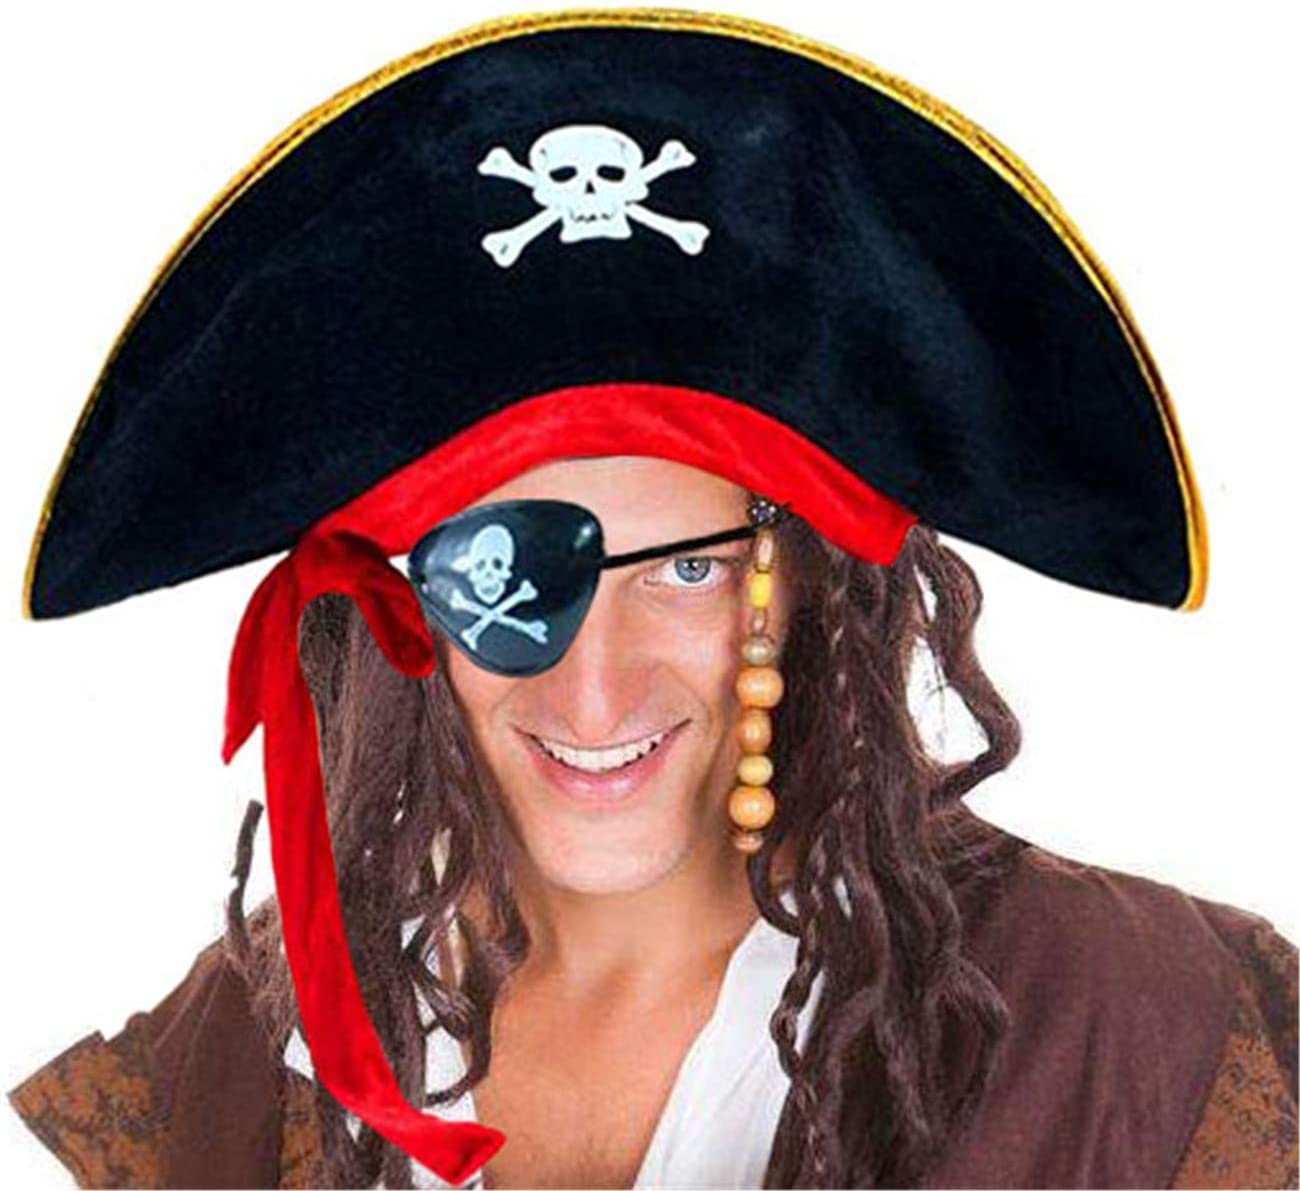 PIRATE HAT EYE PATCH EARRING COSTUME Adult Tricorne Felt Hat Buccaneer